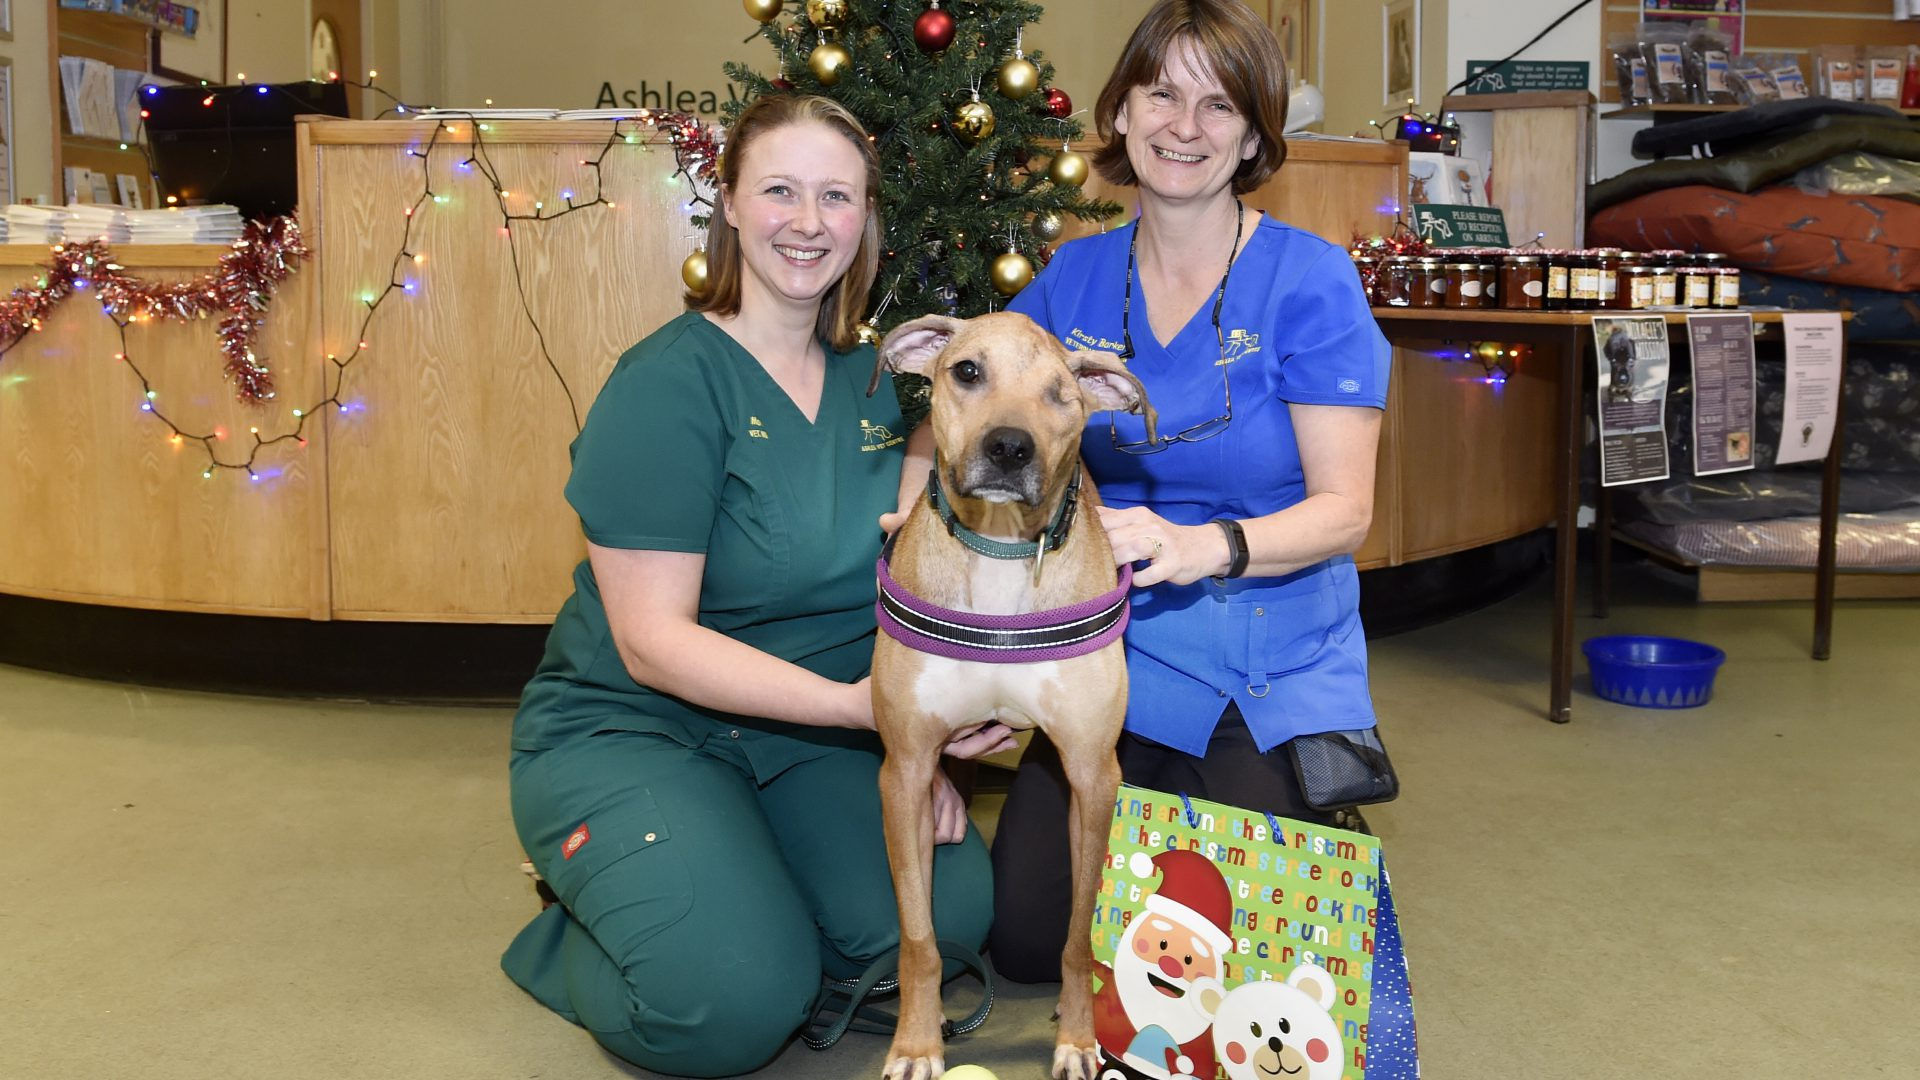 Christmas miracle as Bruce finds new home with nurse who helped to save him